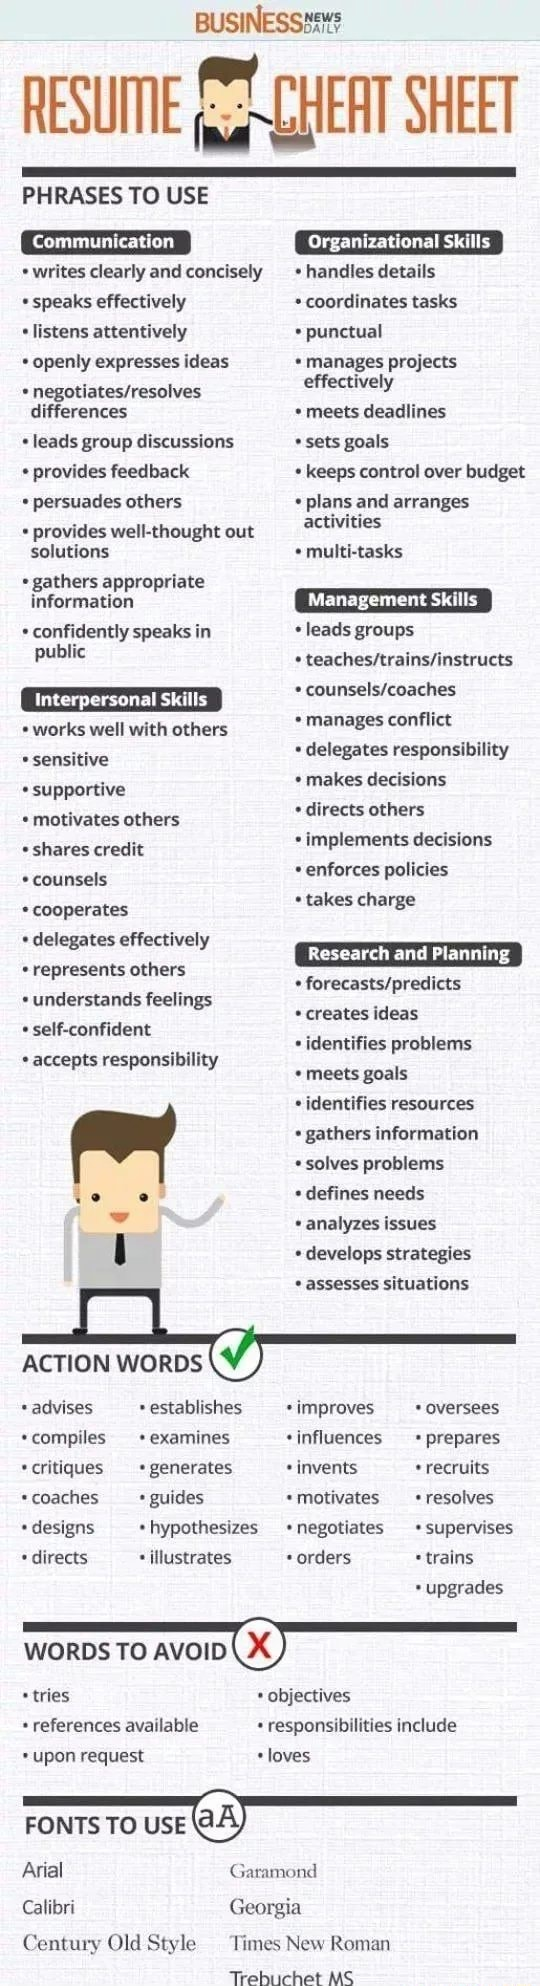 NEWS DAILY BUSINESS RESUME CHEAT SHEET PHRASES TO USE * writes clearly and concisely speaks effectively Organizational Skills handles details coordinates tasks listens attentively punctual * openly expresses ideas * manages projects effectively differences leads group discussions sets goals * provides feedback * persuades others provides well thought out solutions gathers appropriate information * confidently speaks in public iterpersonal SI works well with others * sensitive * supportive * motivates others shares credit * counsels * cooperates delegates effectively represents others * understands feelings self confident * accepts responsibility * meets deadlines * sets goals keeps control over budget * plans and arranges activities multi tasks Management Skills * leads groups * manages co